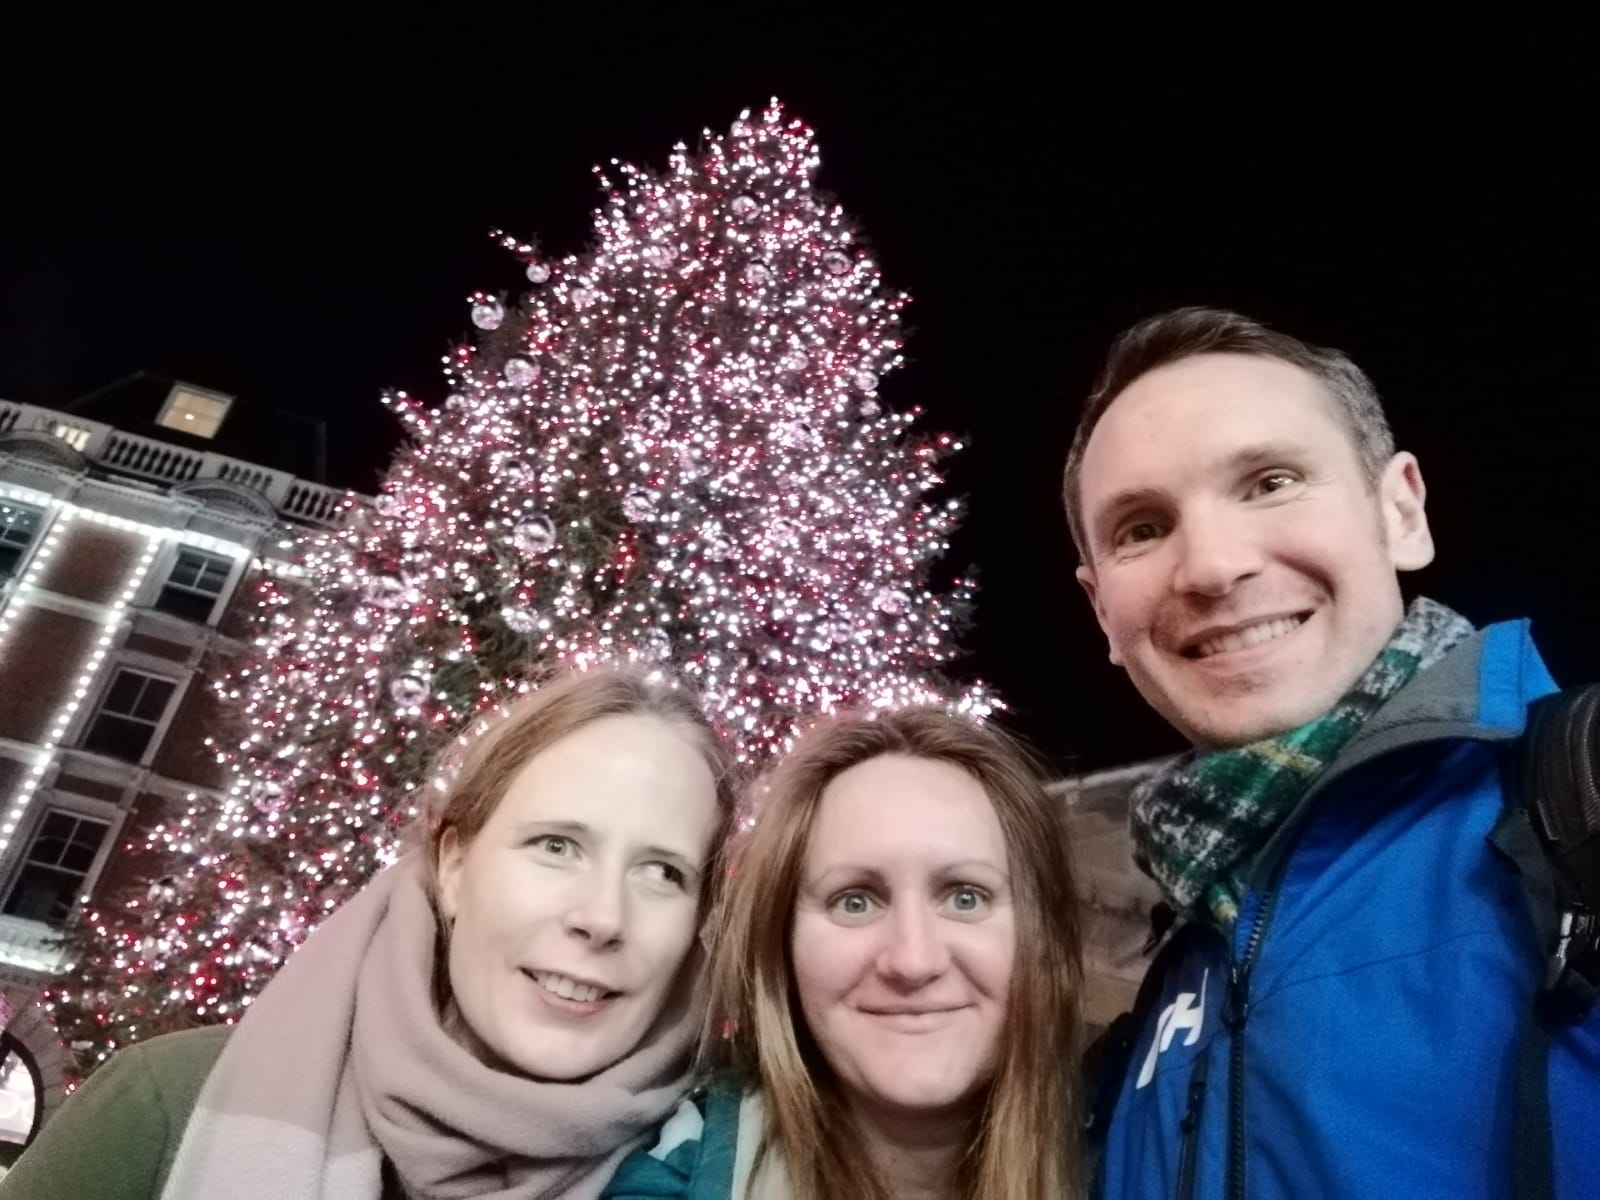 Us and the Christmas Tree in Covent Garden, 2019